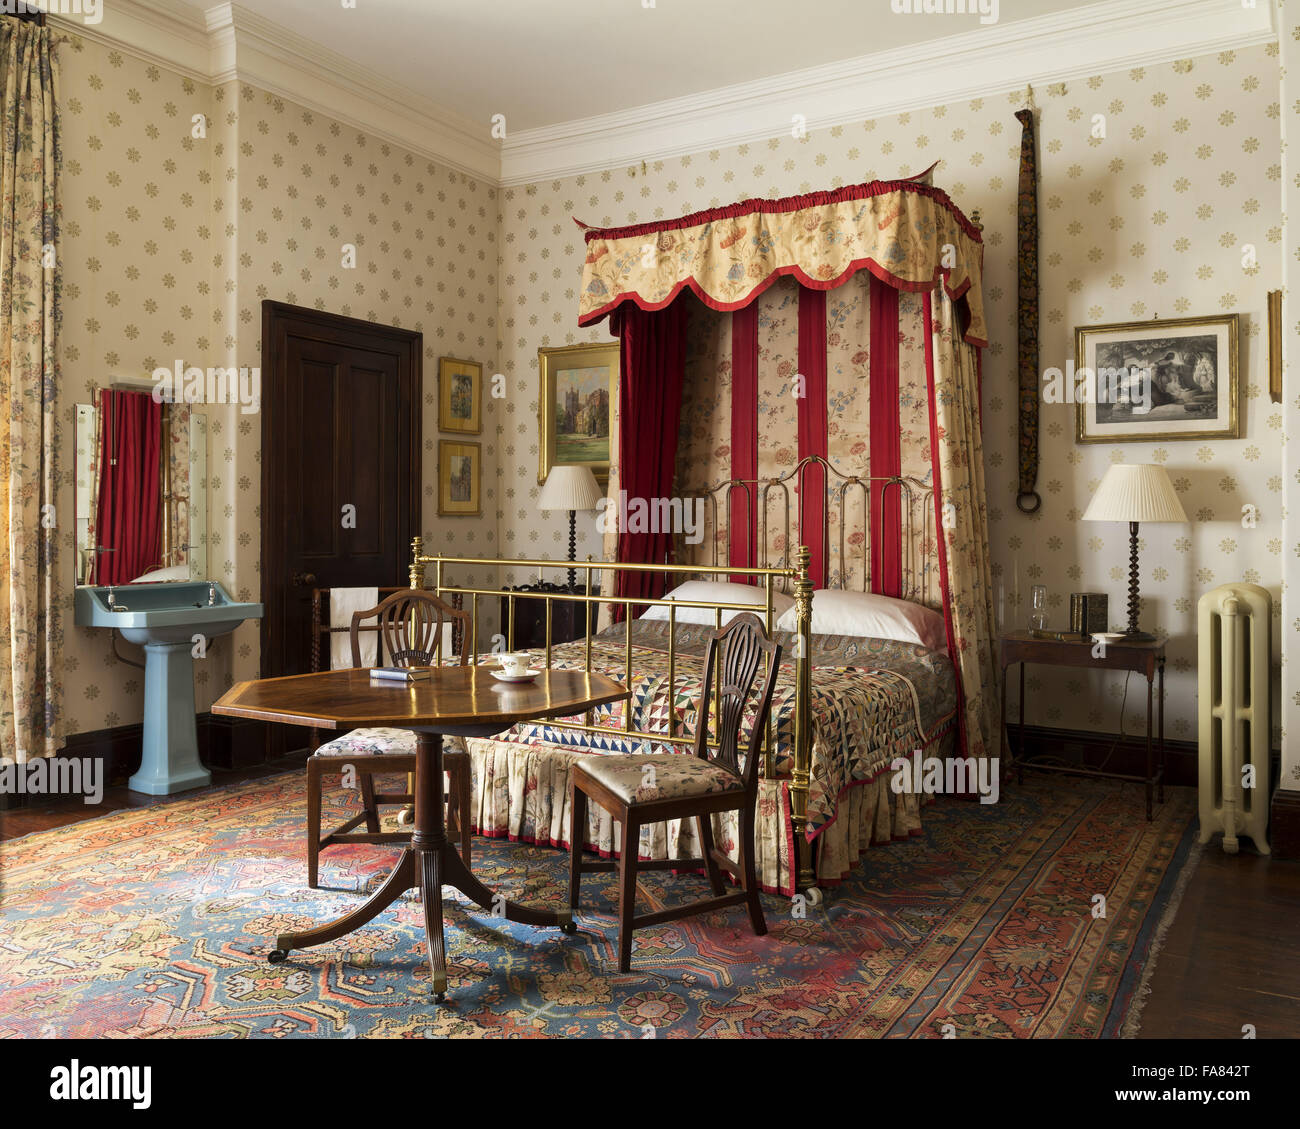 The East Quantoxhead Bedroom at Dunster Castle Somerset with iron and brass bed with & Half Tester Beds Stock Photos u0026 Half Tester Beds Stock Images - Alamy